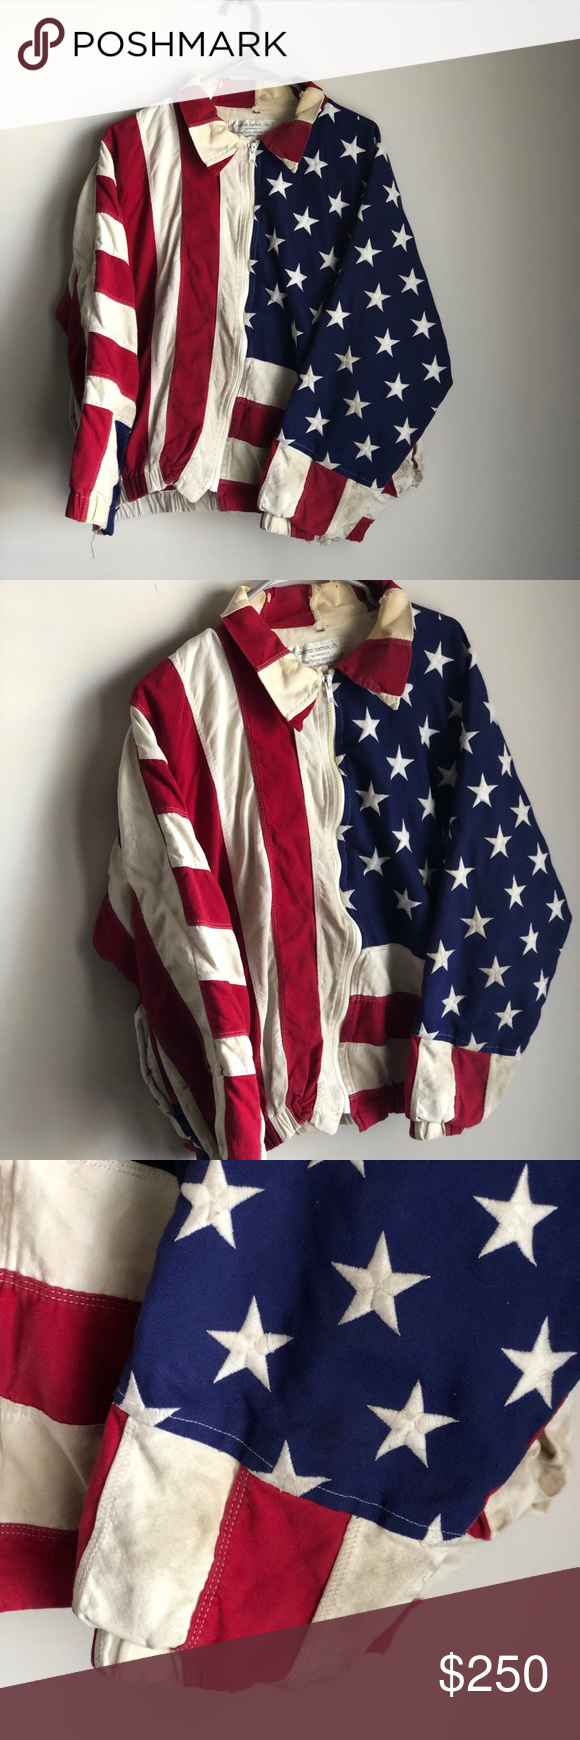 Vtg 1993 Usa American Flag Jacket In 2020 Jackets Clothes Design 90s Fashion